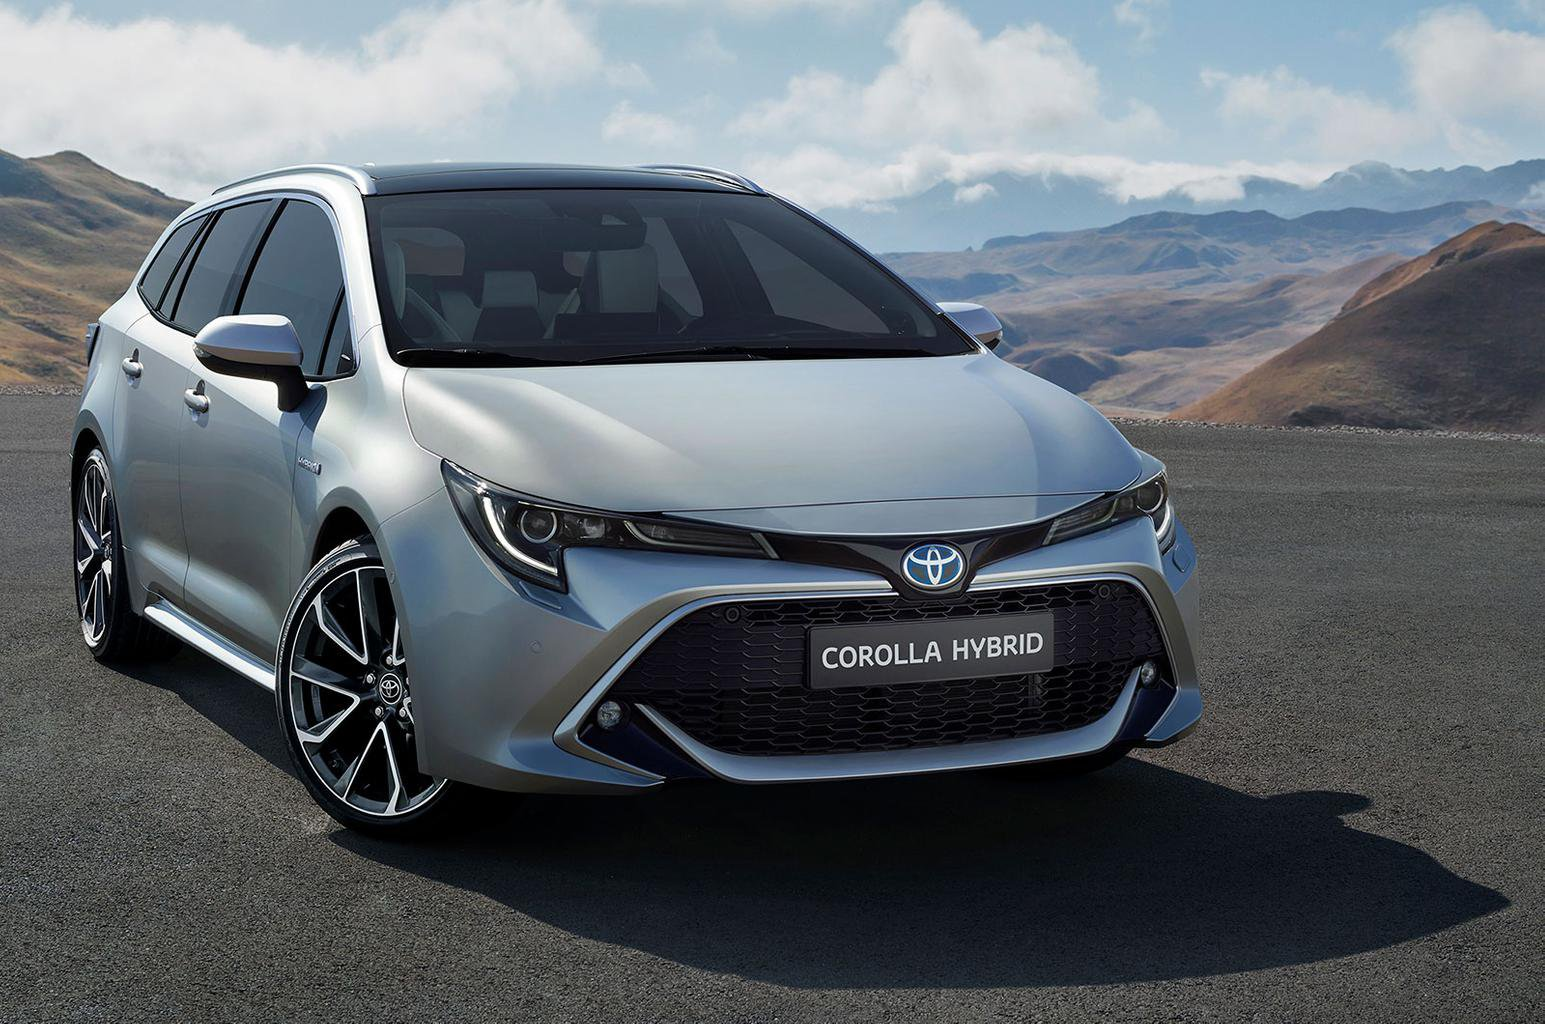 2019 Toyota Corolla Touring Sports – price, specs and release date